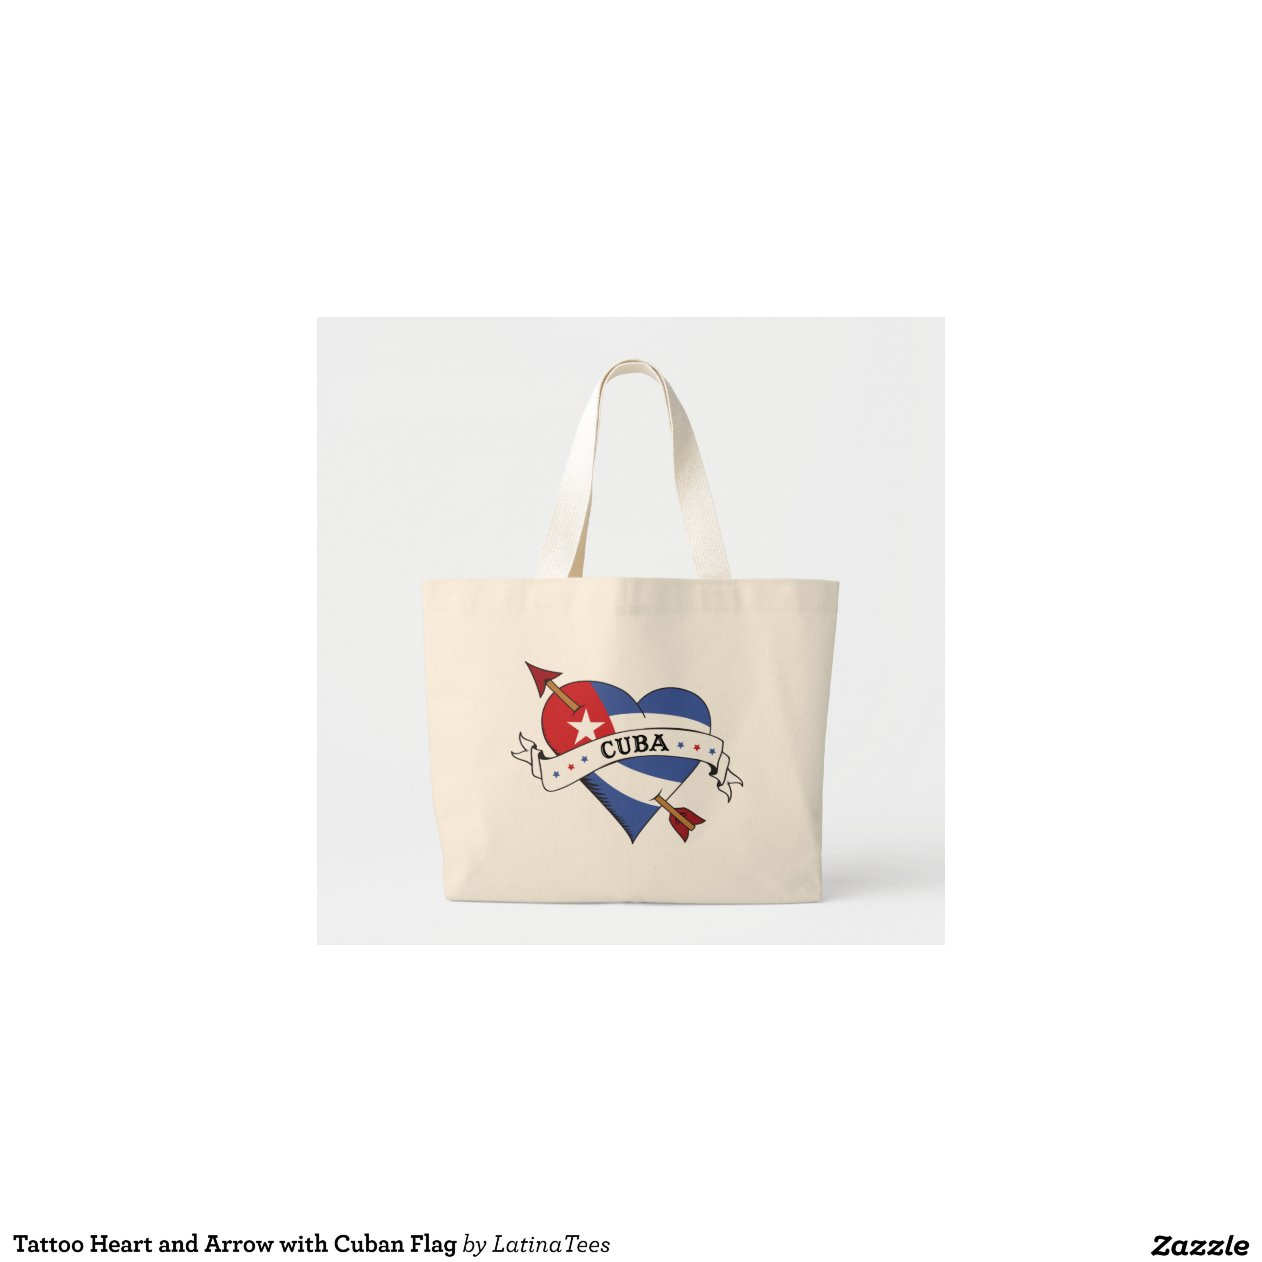 tattoo heart and arrow with cuban flag tote bag zazzle. Black Bedroom Furniture Sets. Home Design Ideas